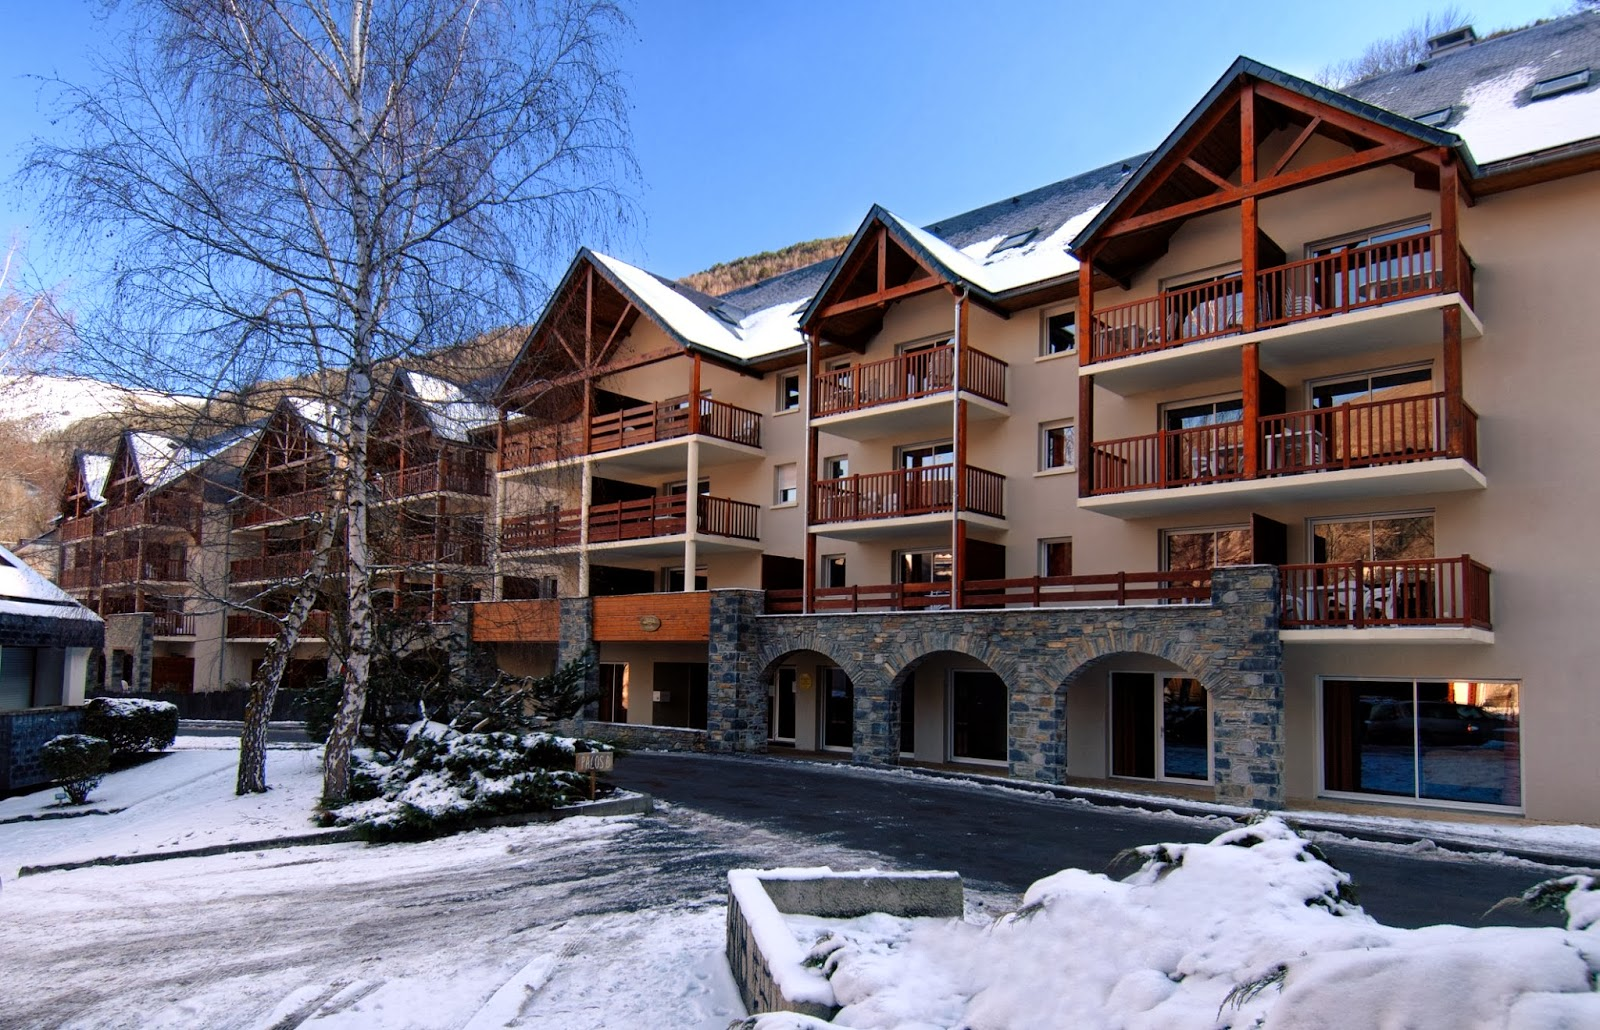 self catered accommodation in Saint Lary, Soleil d'Aure